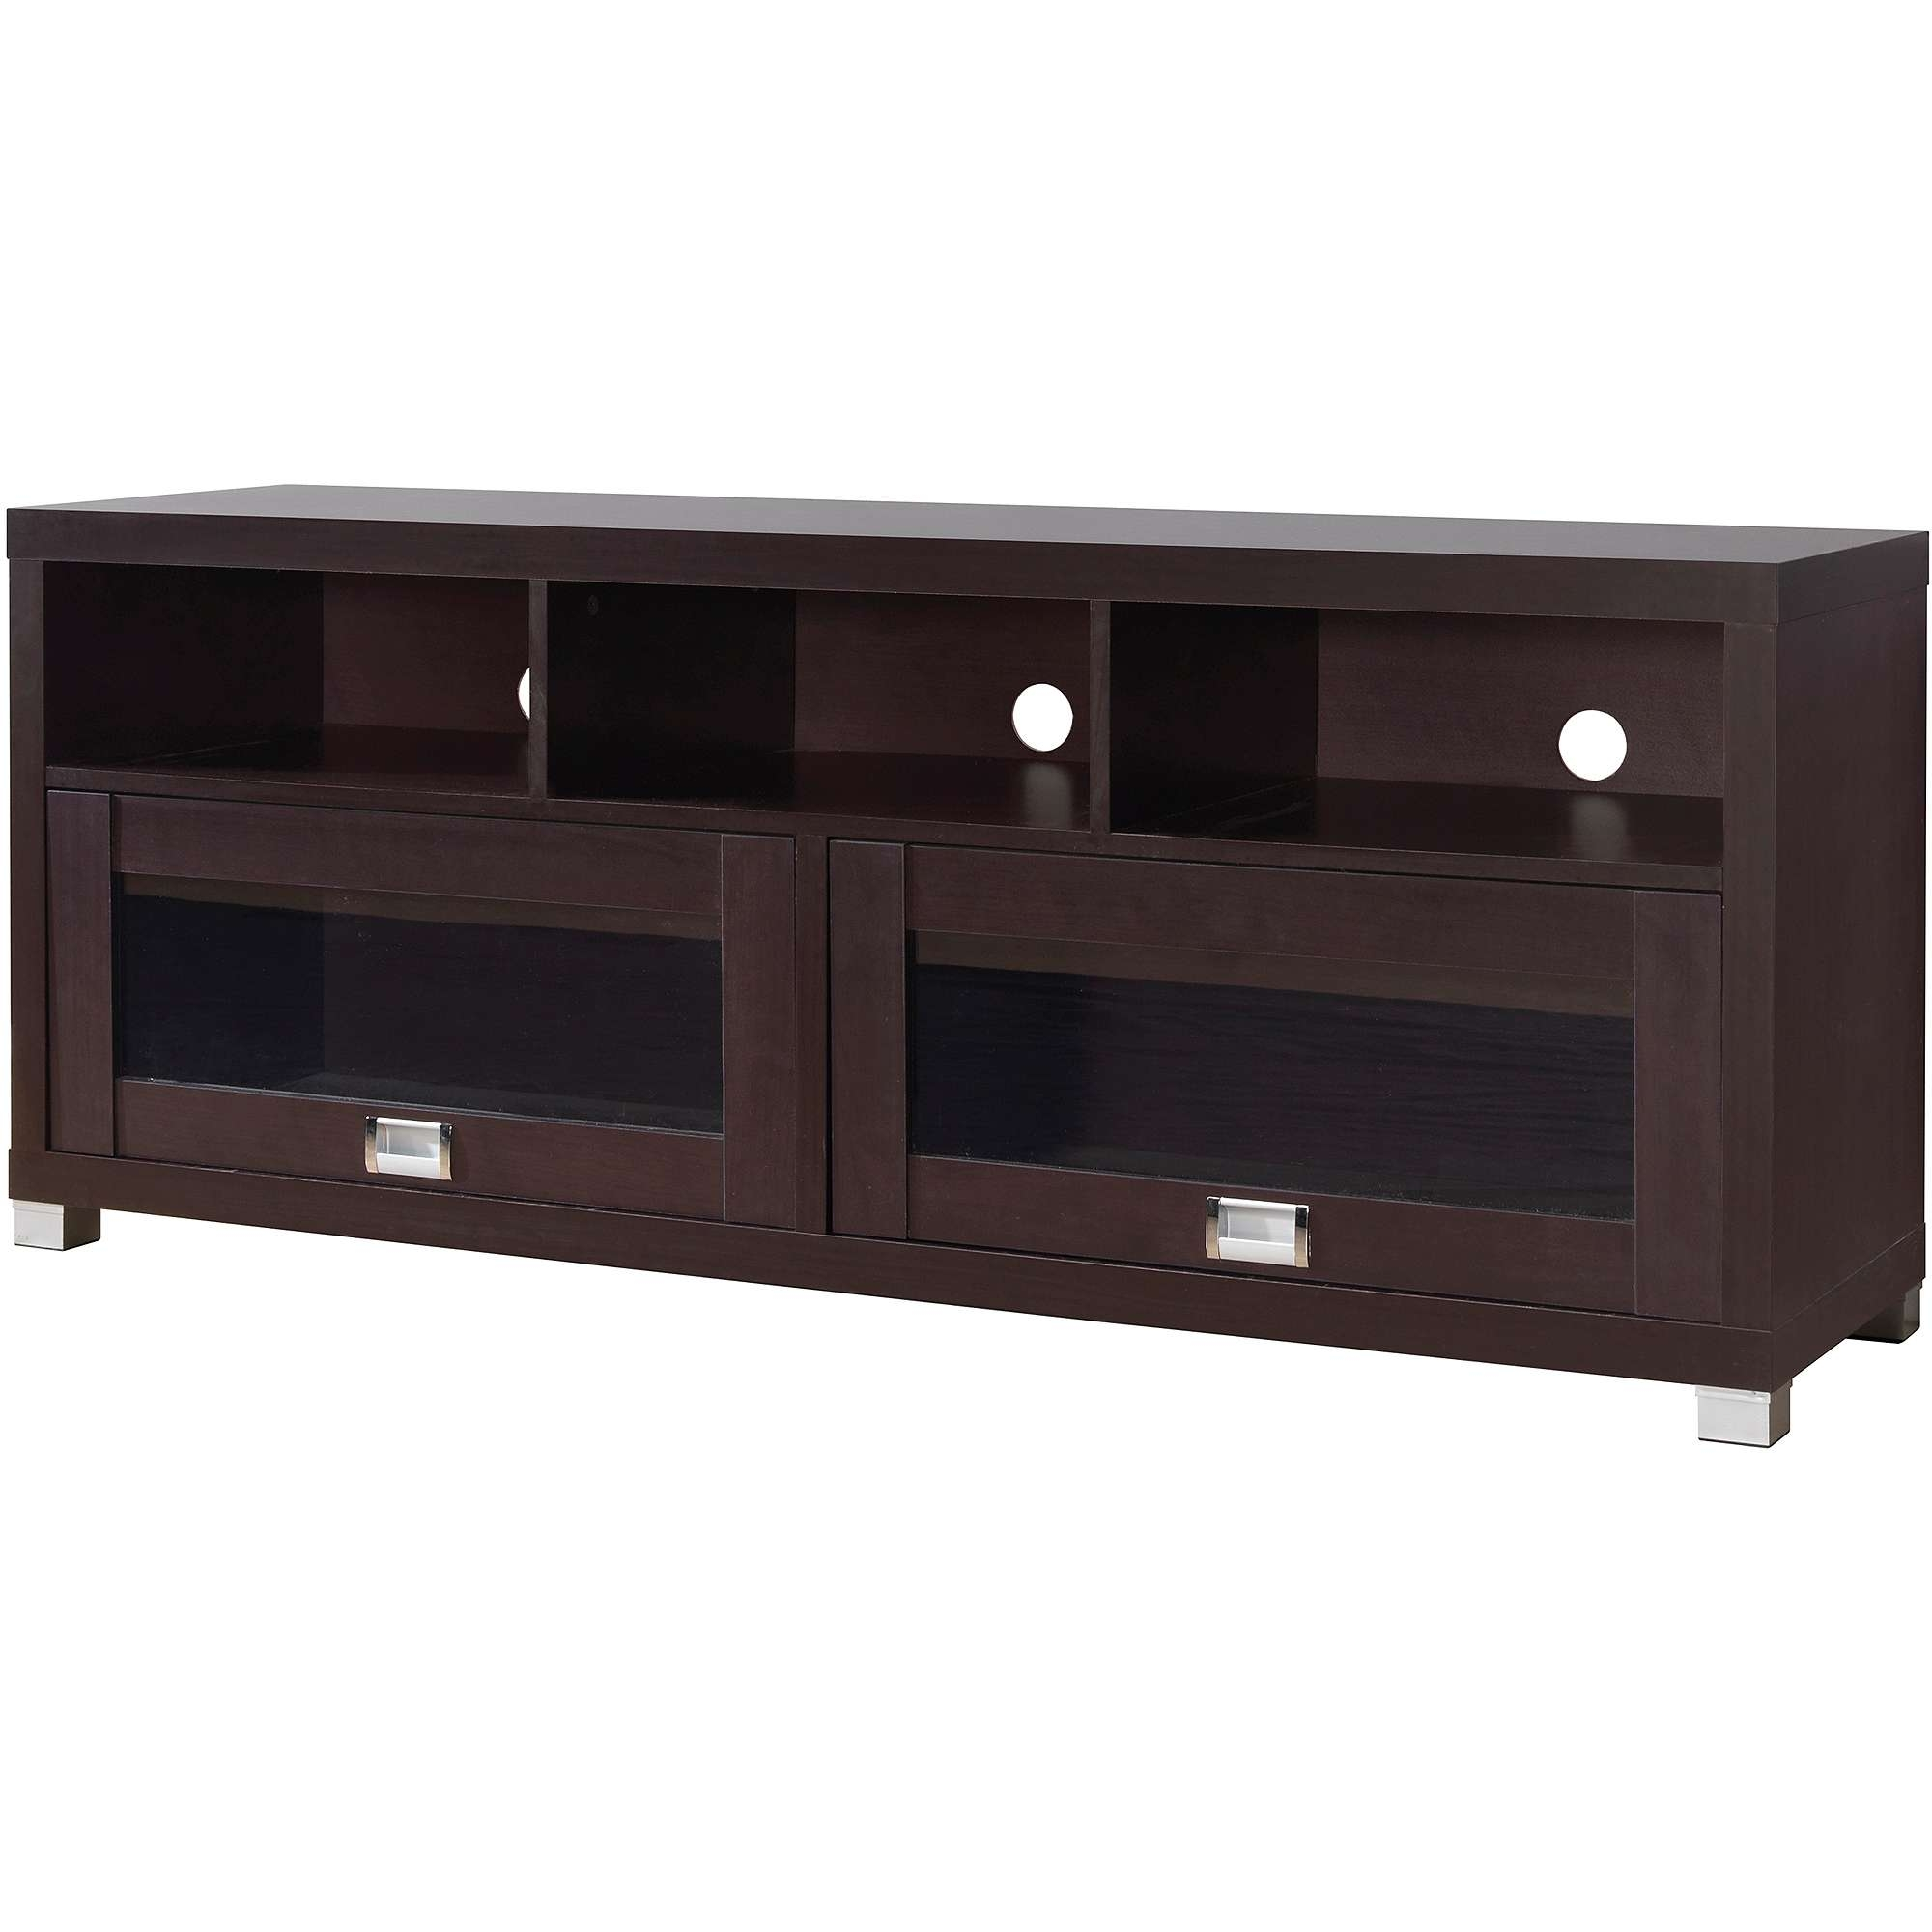 """Techni Mobili Durbin Tv Cabinet For Tvs Up To 65"""", Espresso For Expresso Tv Stands (View 12 of 15)"""